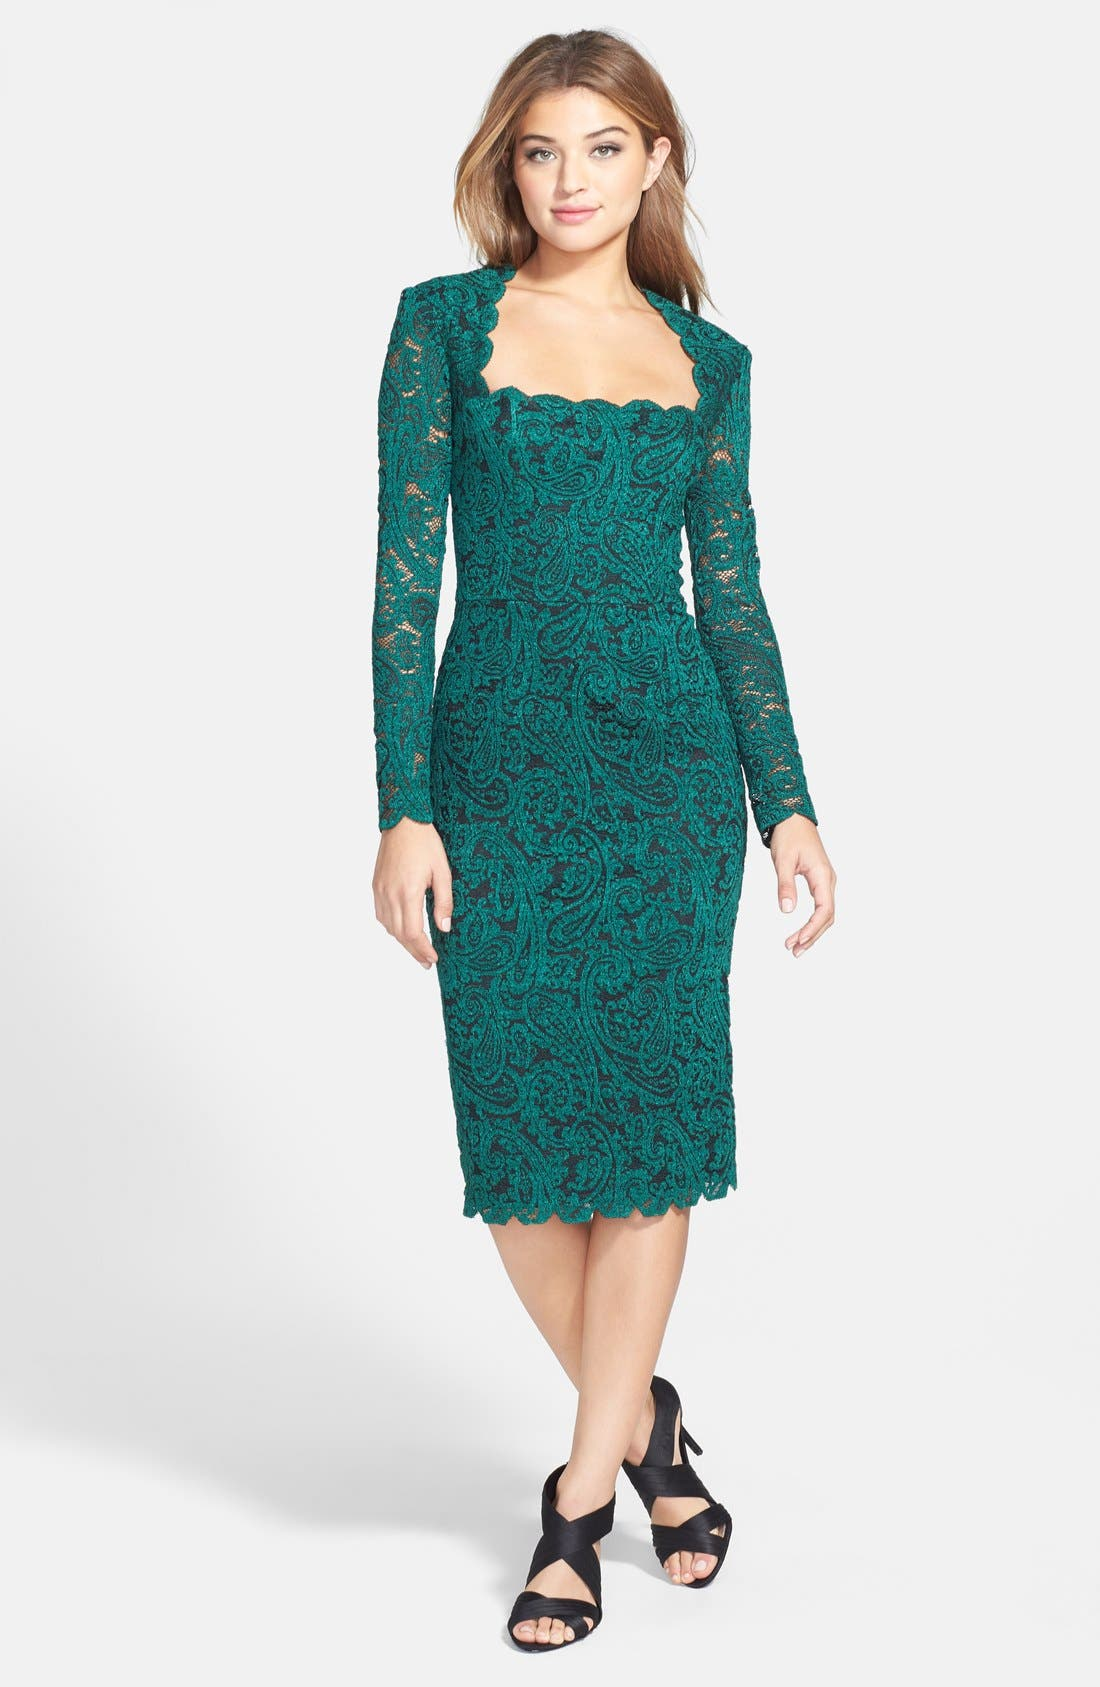 Alternate Image 1 Selected - Maggy London Square Neck Lace Sheath Dress